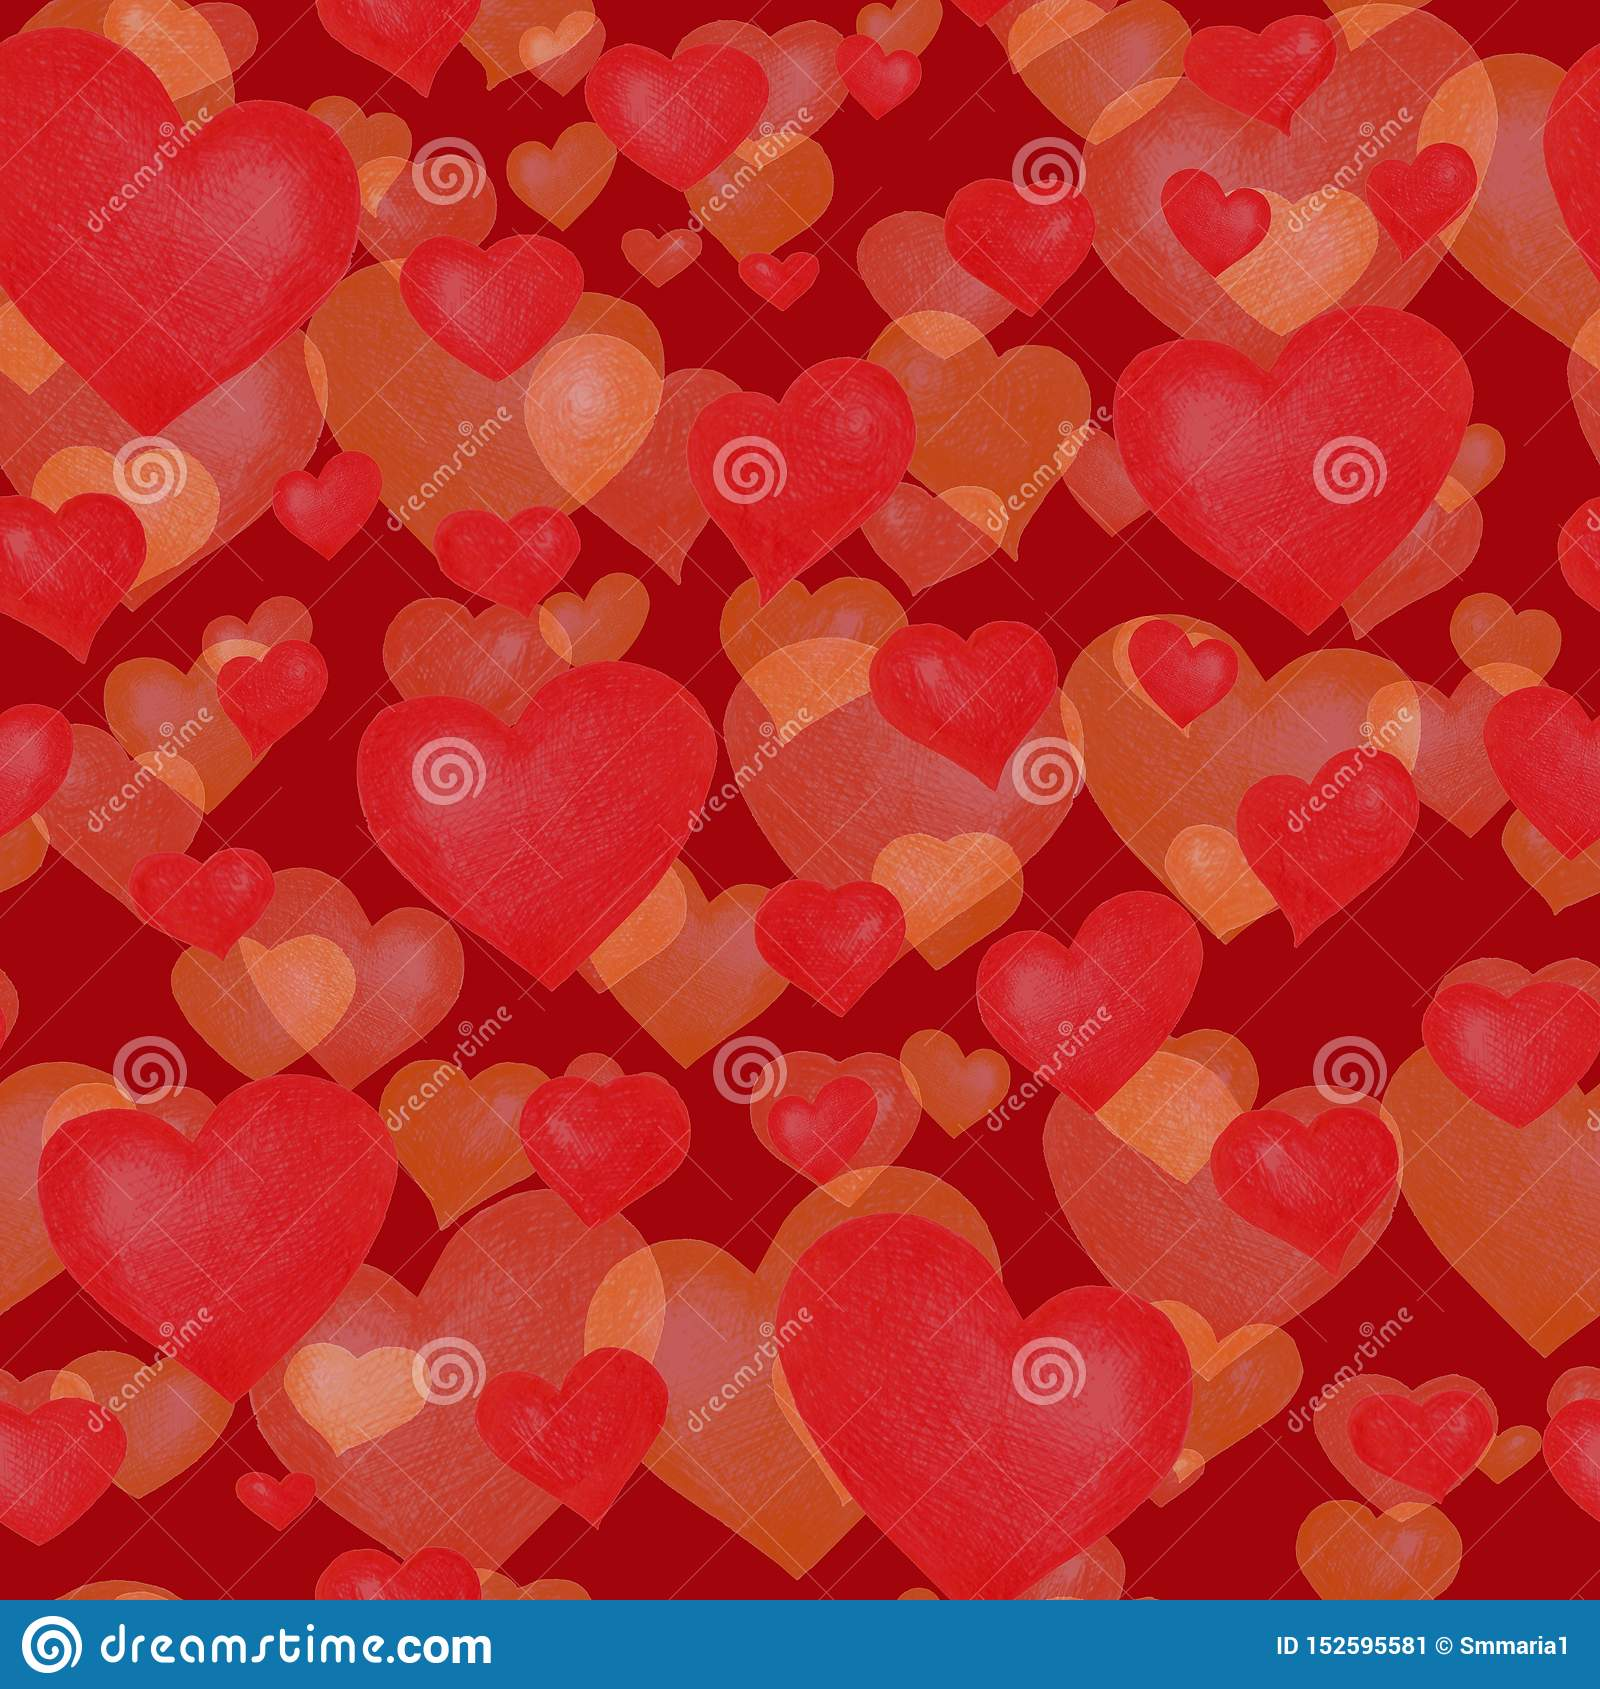 Love themes seamless texture. Red seamless pattern with red hearts isolated on white.